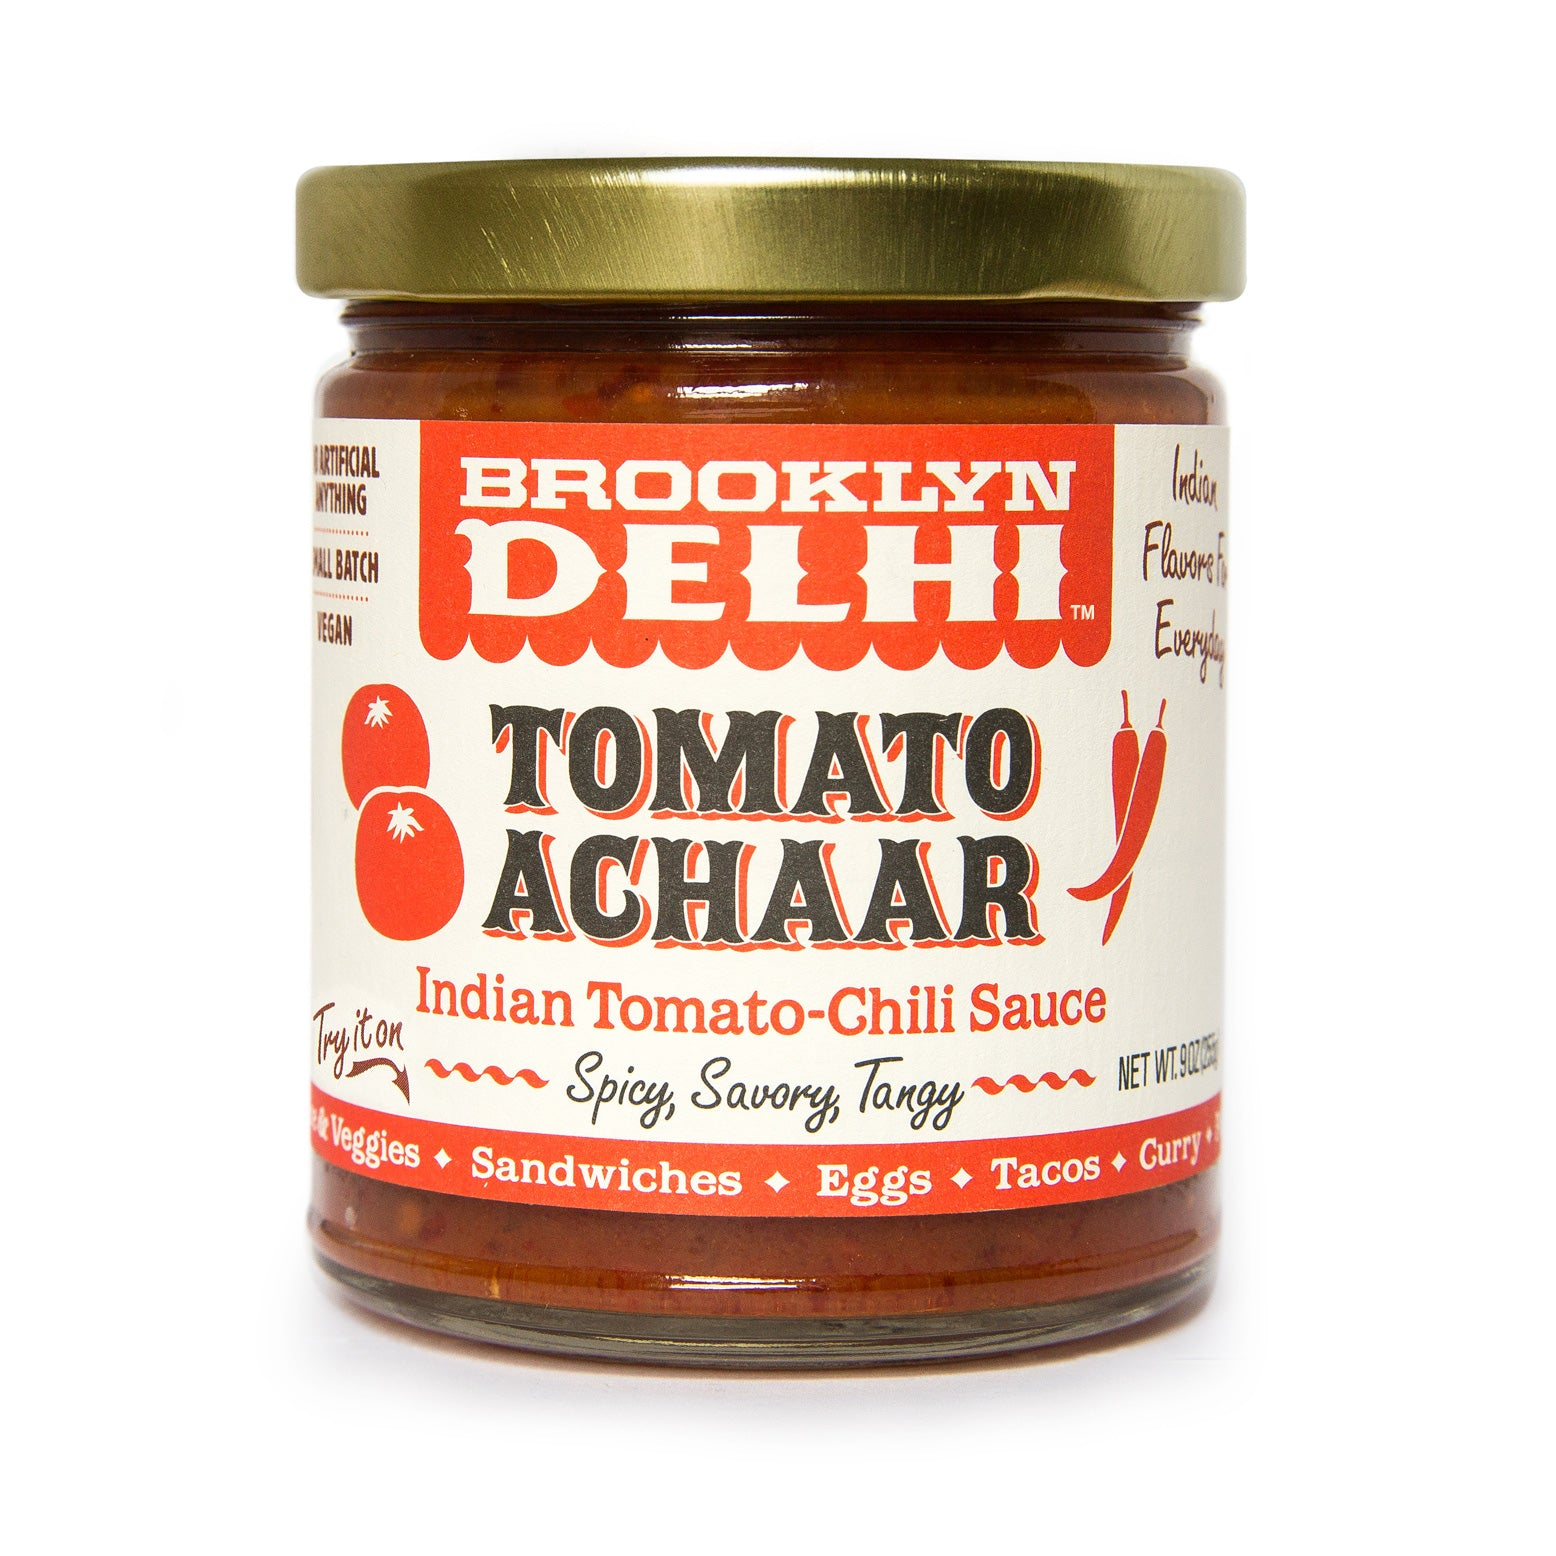 Tomato Achaar - Available on Amazon & at Whole Foods